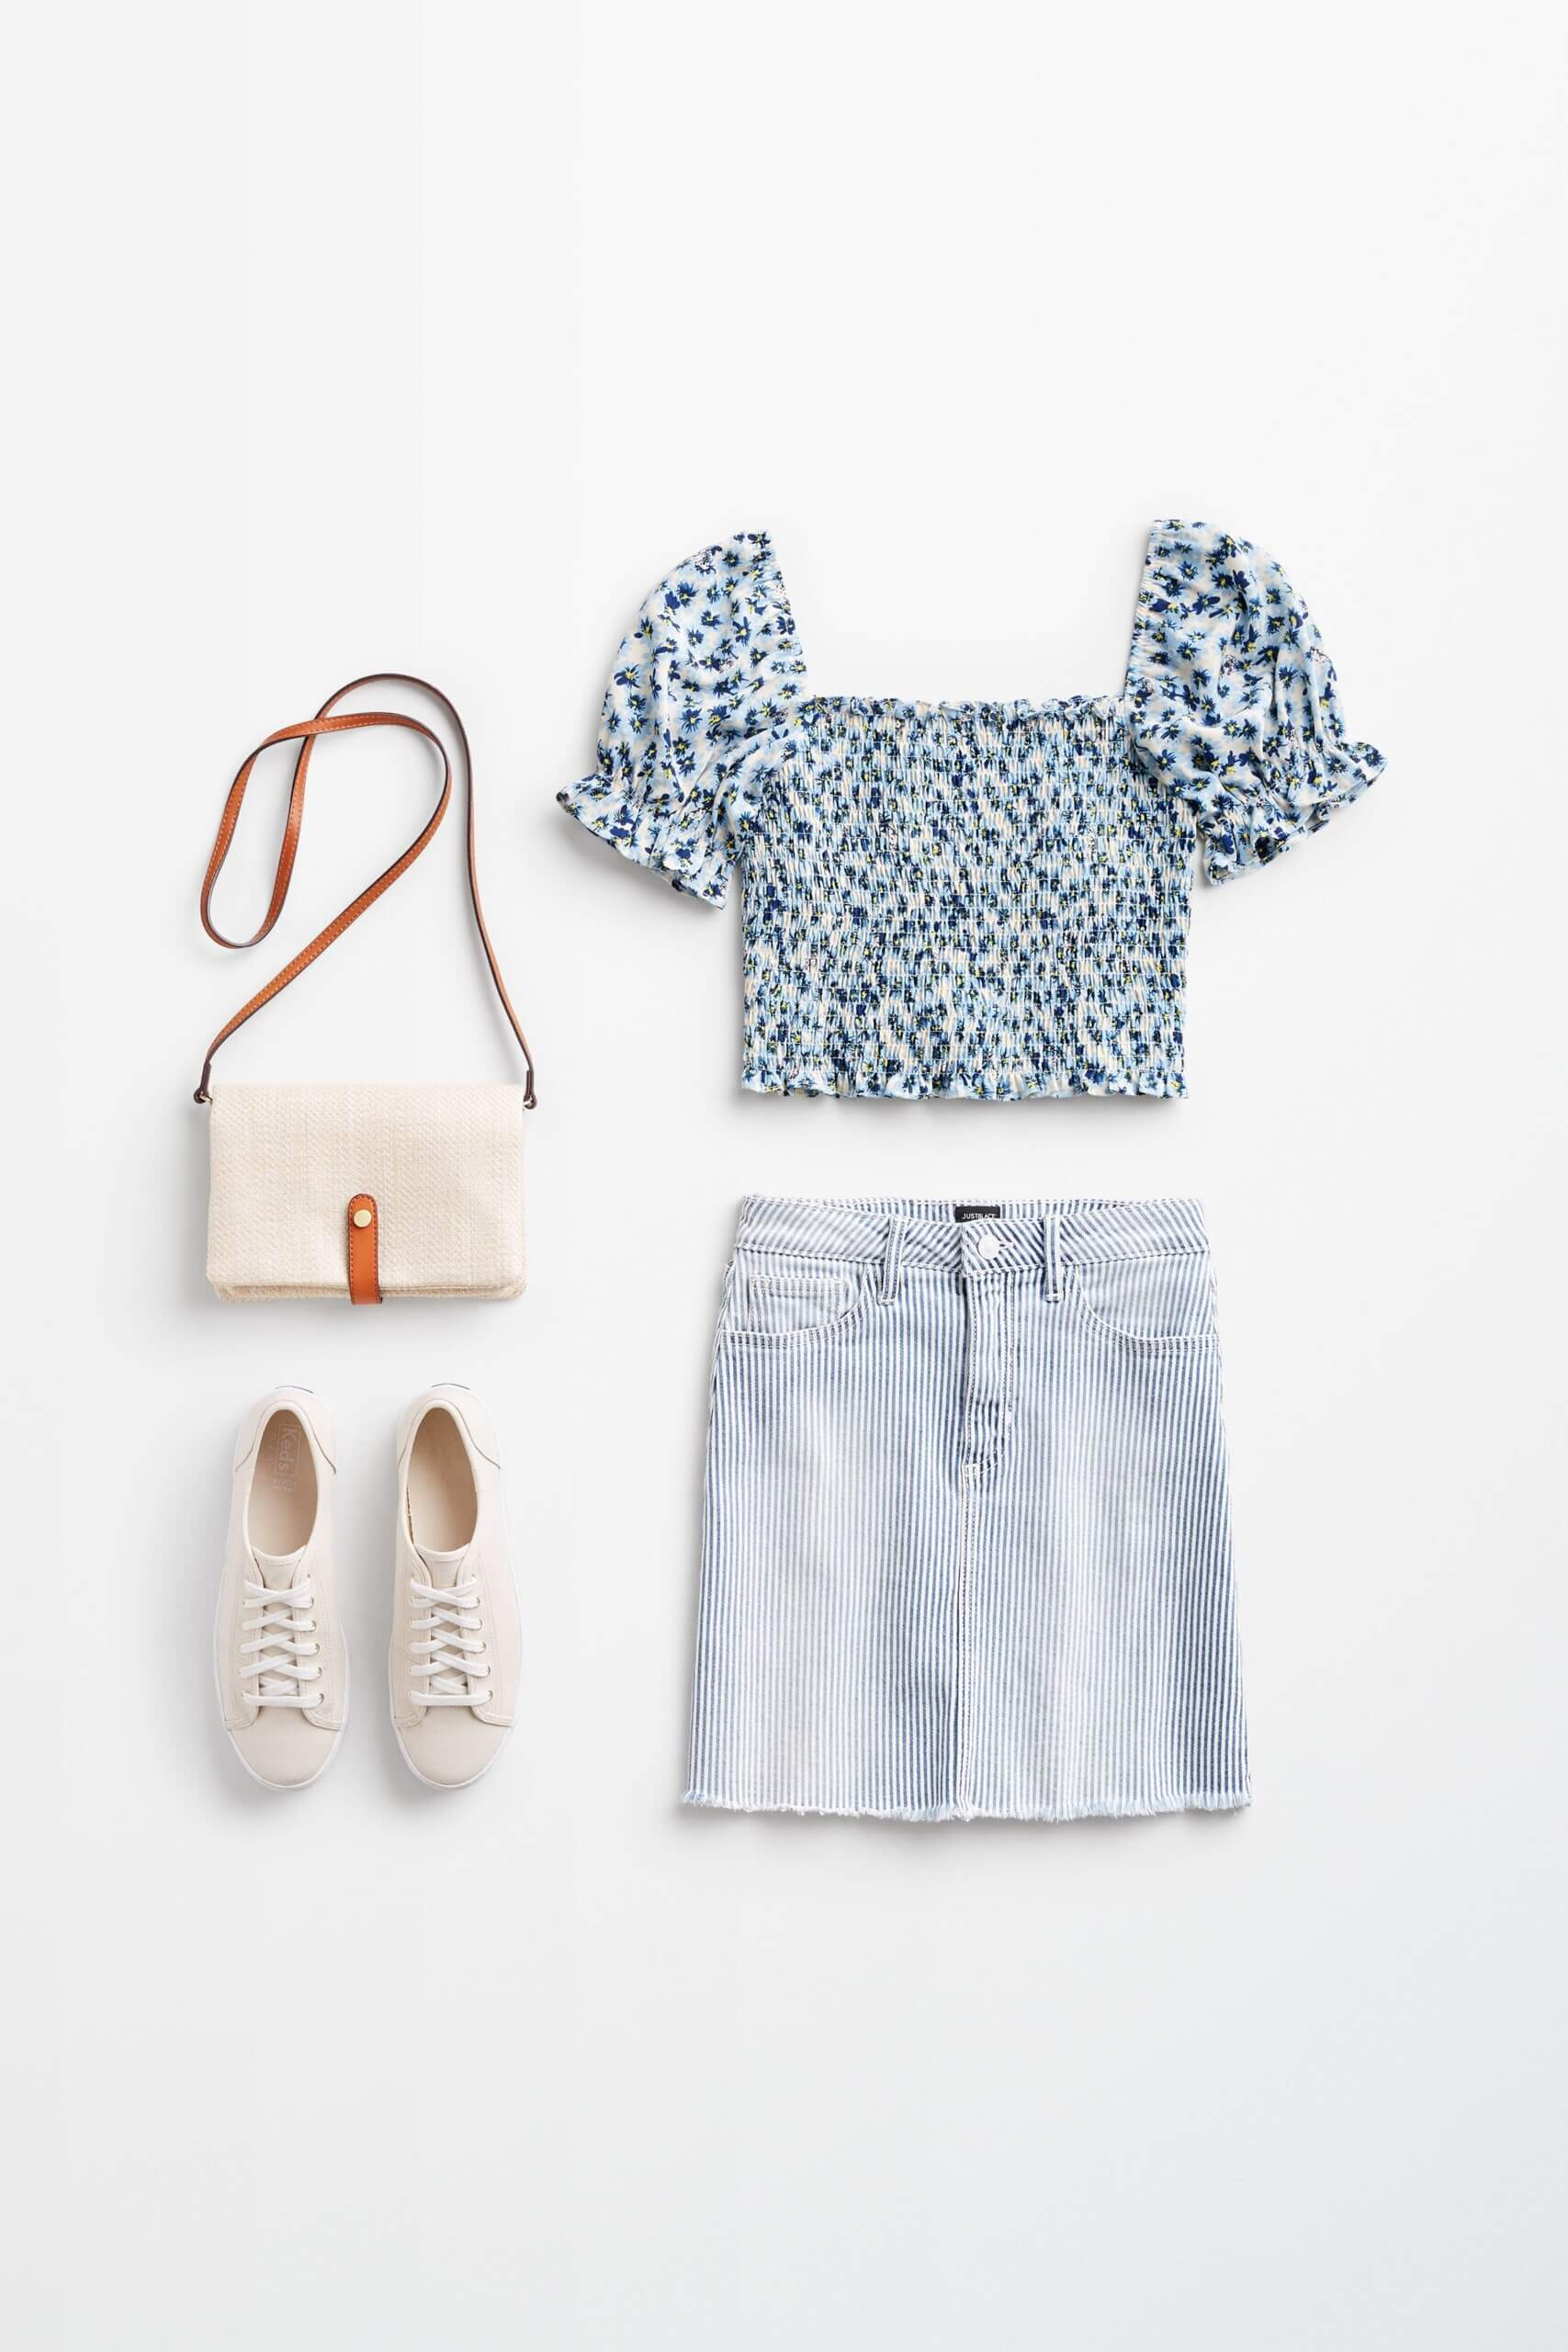 Stitch Fix Women's outfit laydown featuring denim skirt, smocked blouse with puff sleeves, sneakers and crossbody bag.